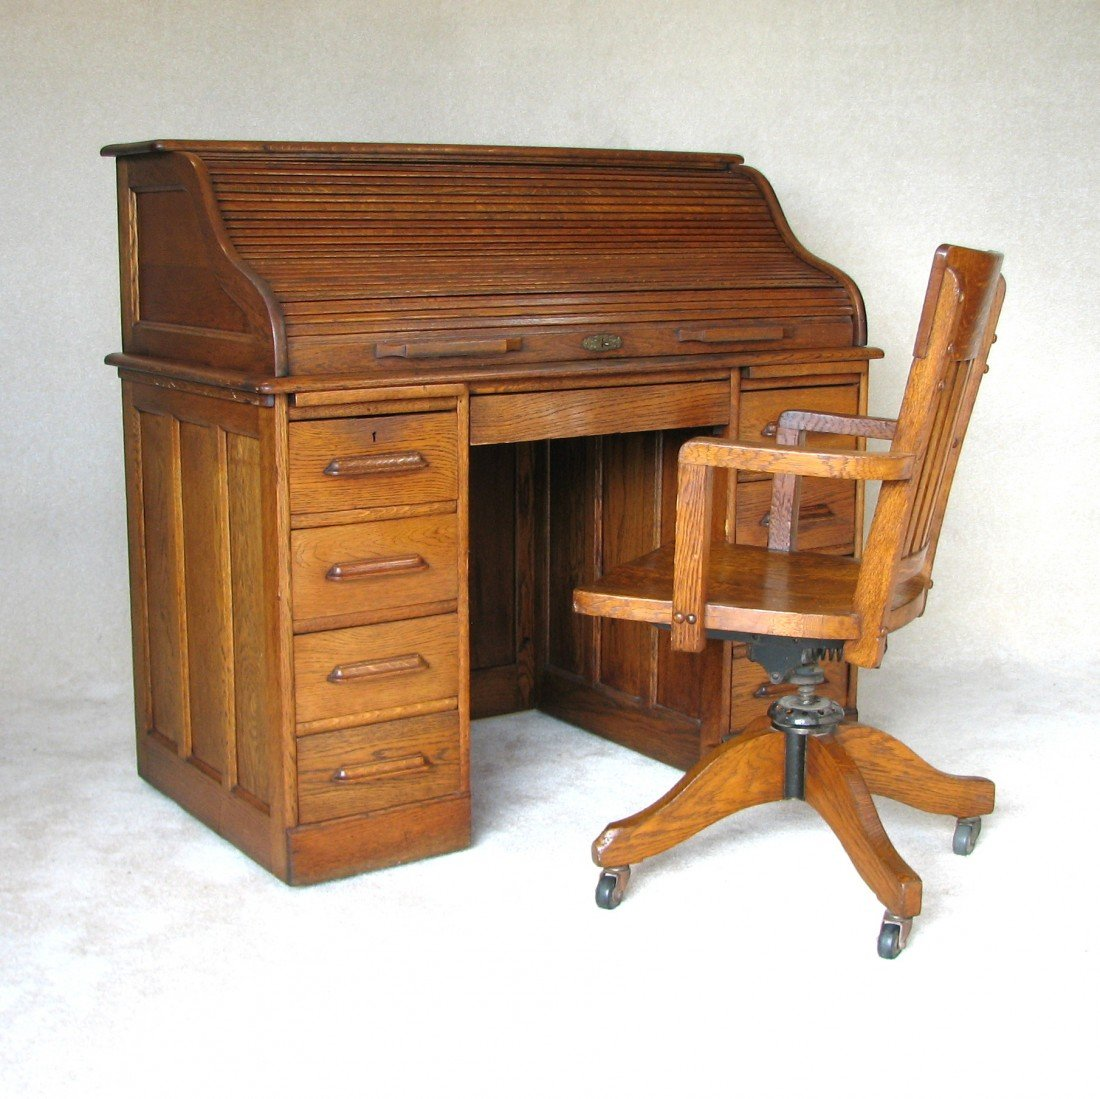 58 antique angus of london rolltop desk and chair - Rolltop Desk